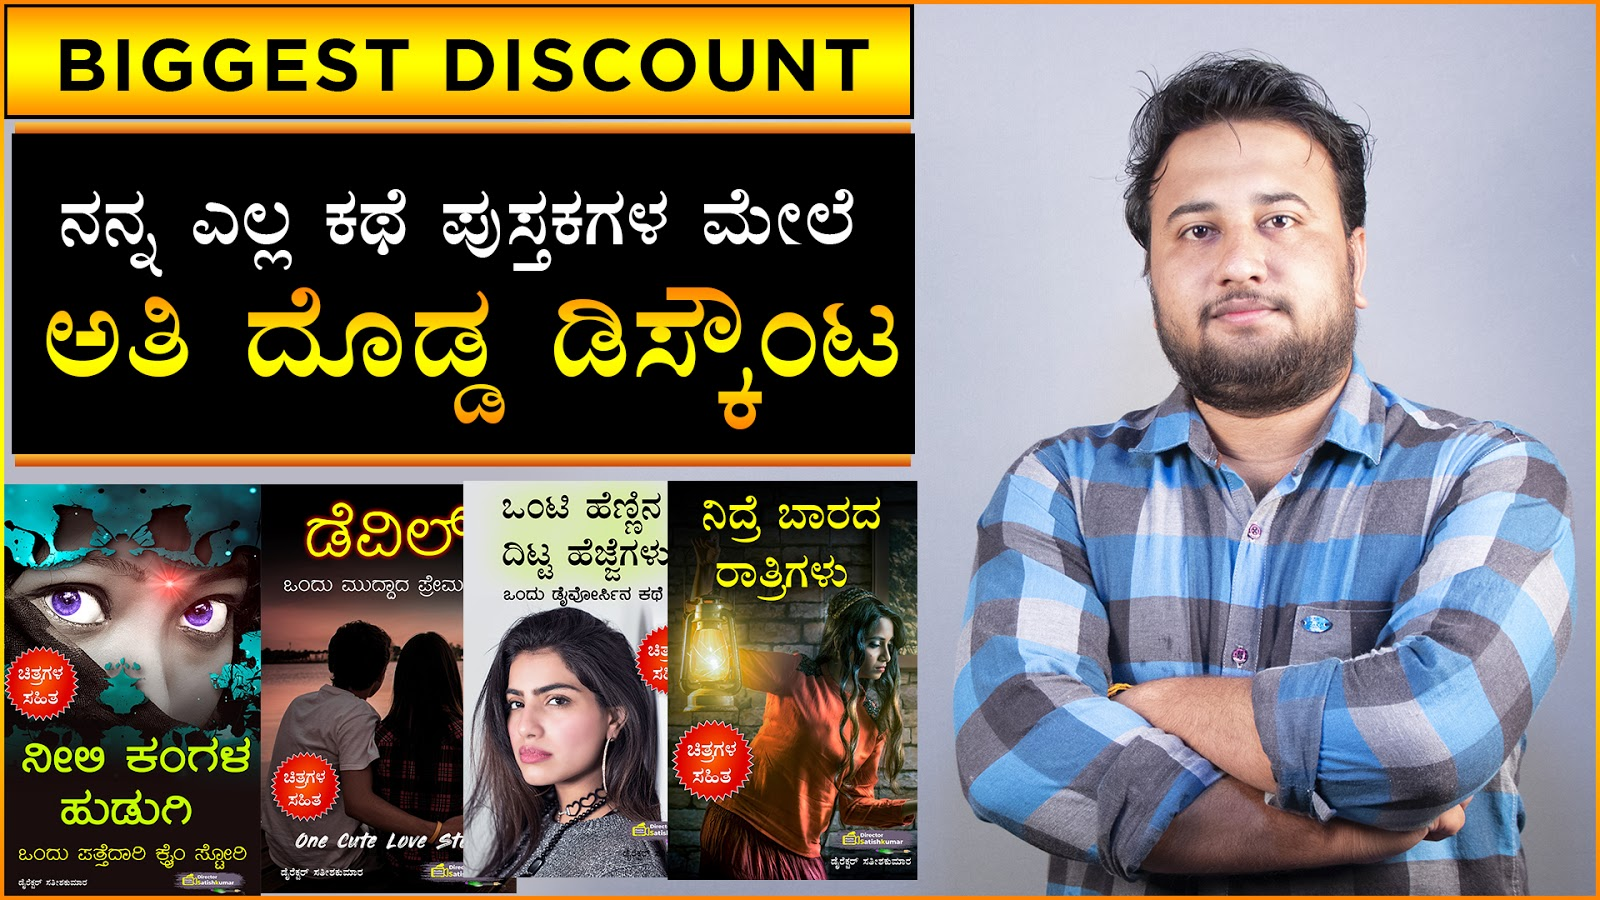 ನನ್ನ ಎಲ್ಲ ಕಥೆ ಪುಸ್ತಕಗಳ ಮೇಲೆ ಅತಿ ದೊಡ್ಡ ಡಿಸ್ಕೌಂಟ - Biggest Discount on all my Story Books - Story Books,ebooks,director satishkumar books,kannada books,reading,stories books buy,kannada ebooks online,love story books,romantic books in kannada,fictional story books in kannada,biggest offer,Kannada eBooks,Kannada Readers,Read ebooks online,ebook download from google books,amazon kindle,google play books,kannada detective novels,novels in kannada,thriller novels in kannada,ebooks sales